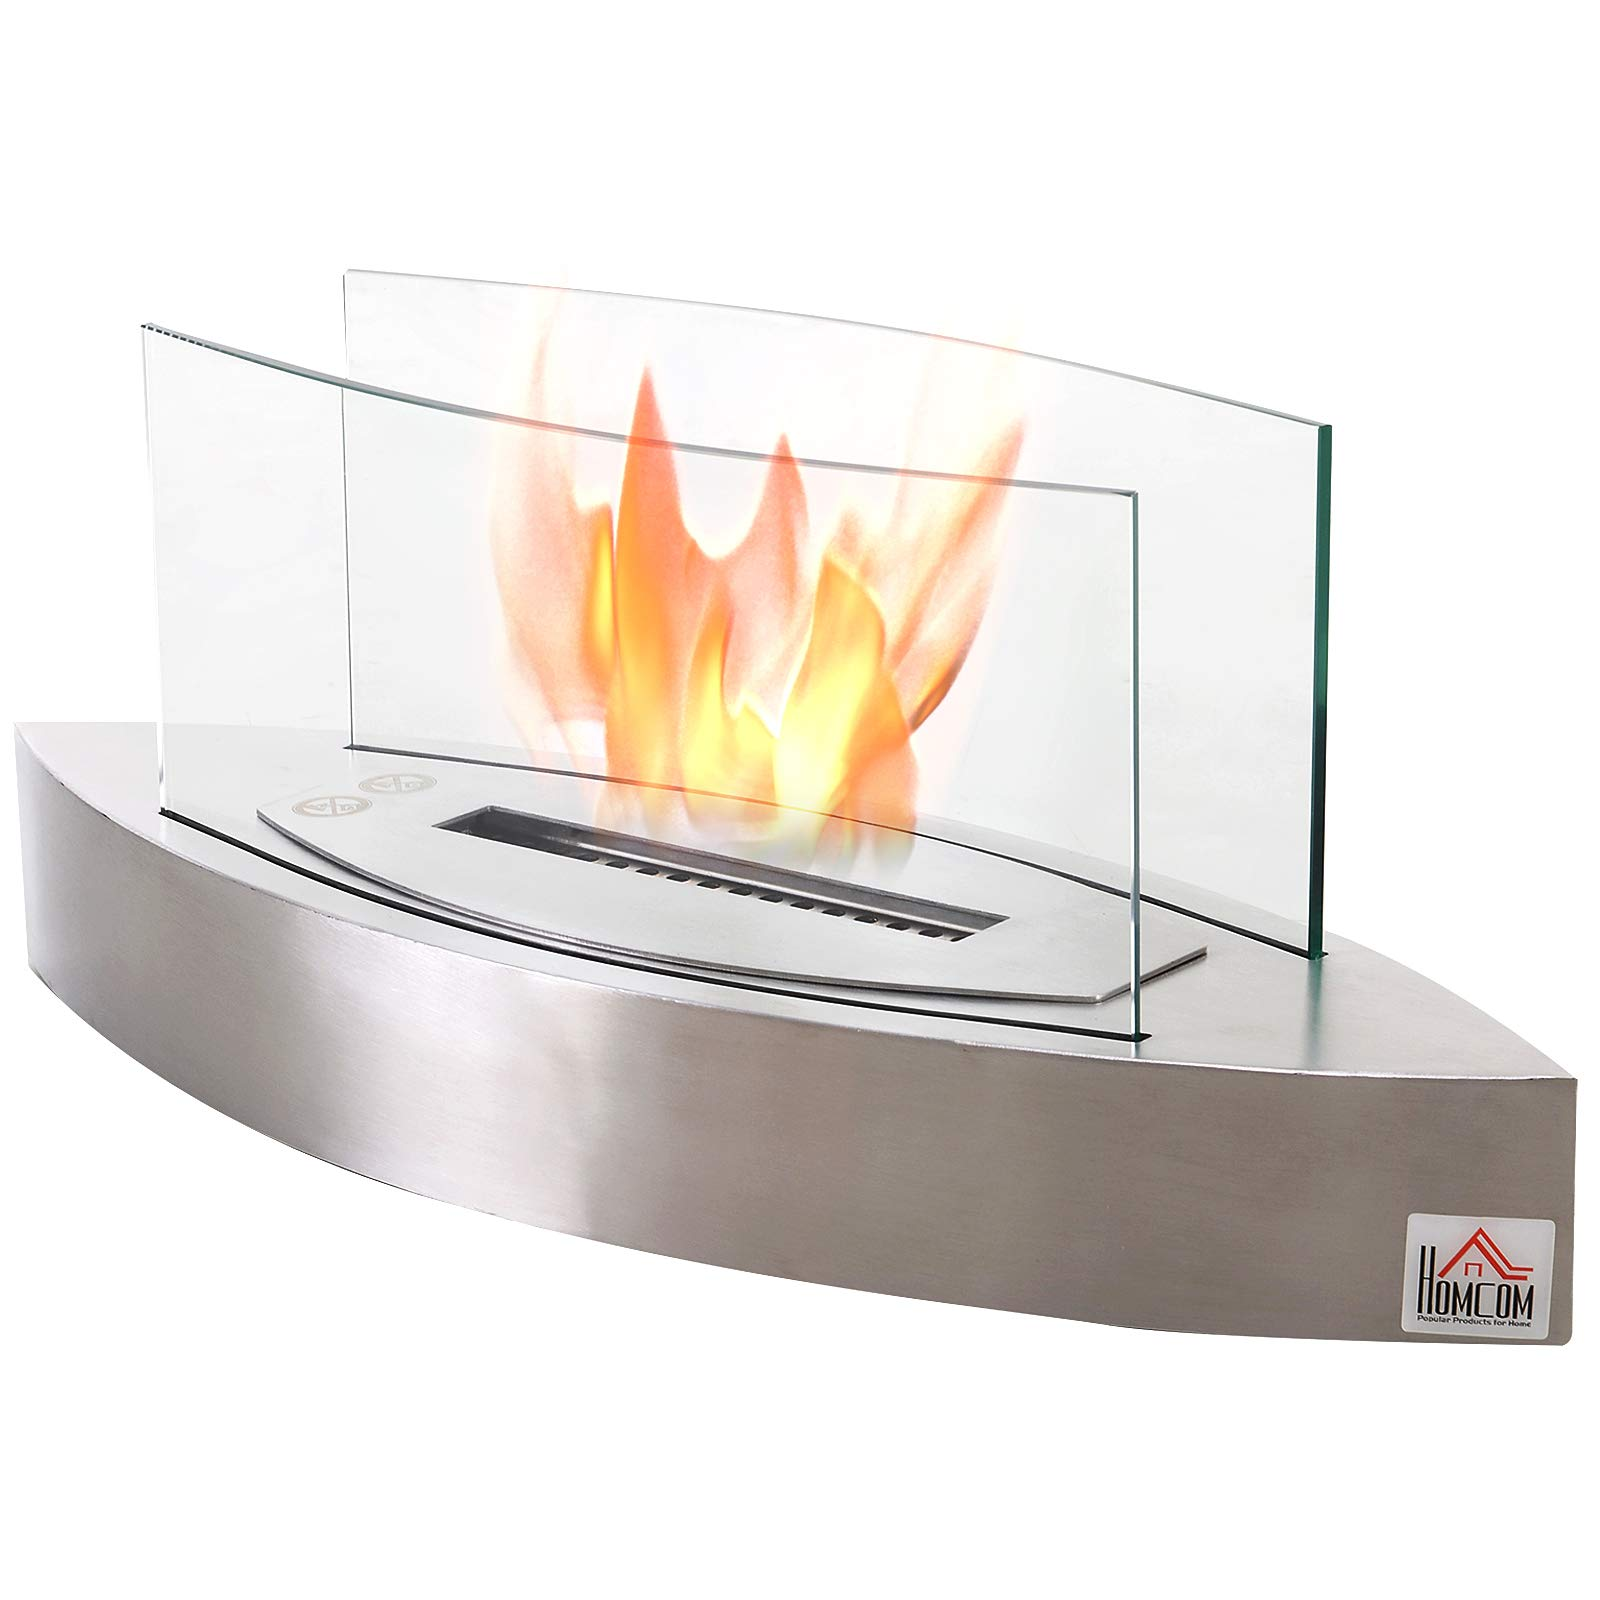 HOMCOM Portable Tabletop Ventless Bio Ethanol Fireplace Glass - Stainless Steel by HOMCOM